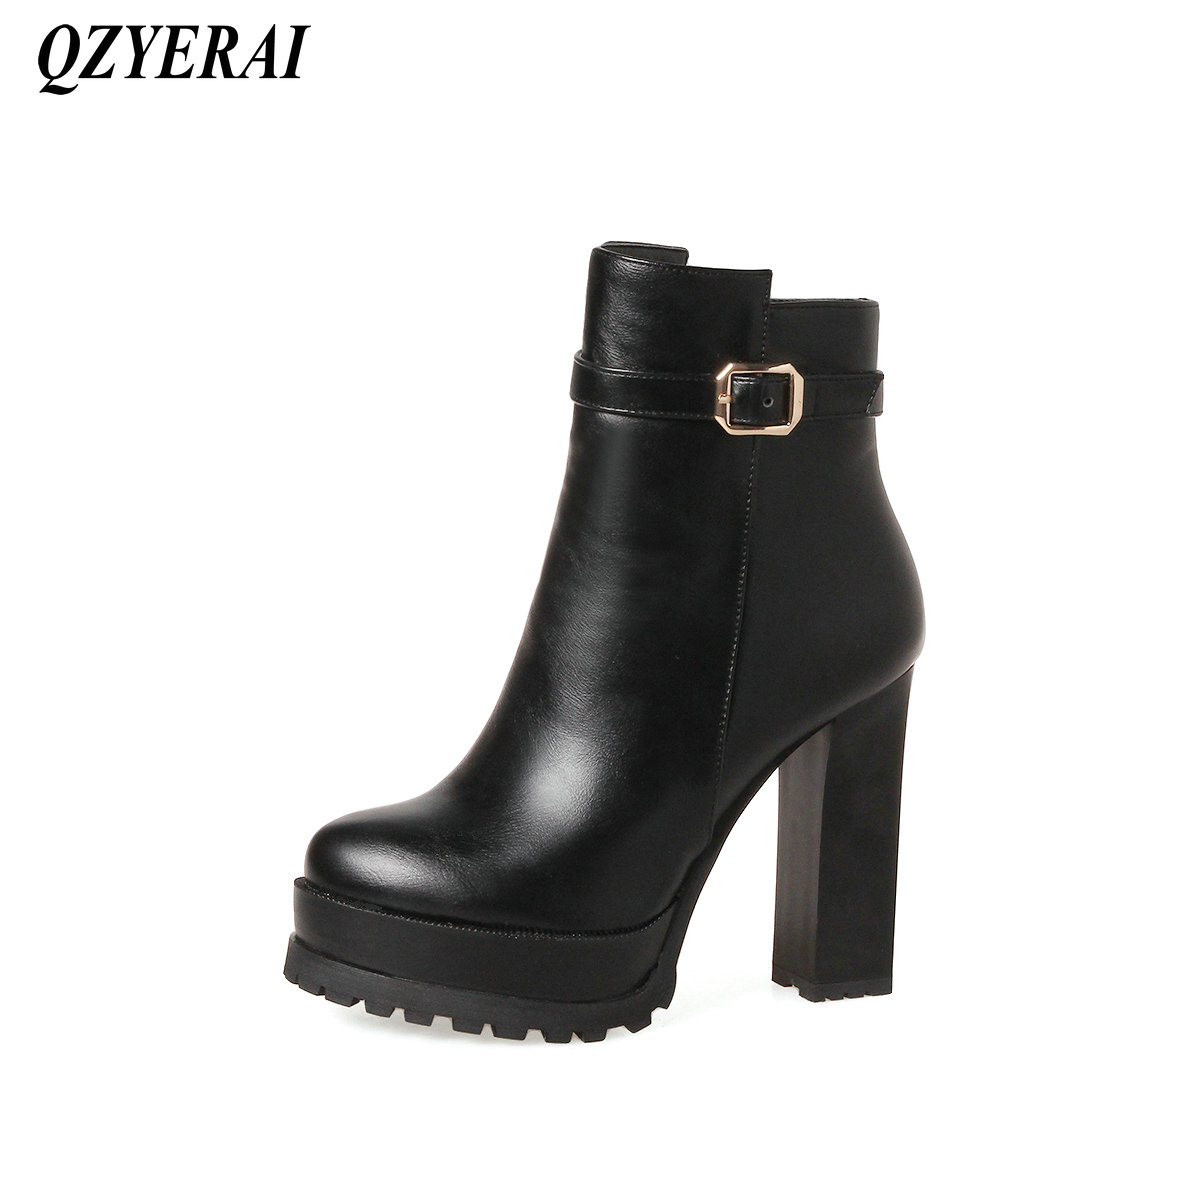 QZYERAI Winter fashionable lady short boots patent leather womens shoes womens boots<br>